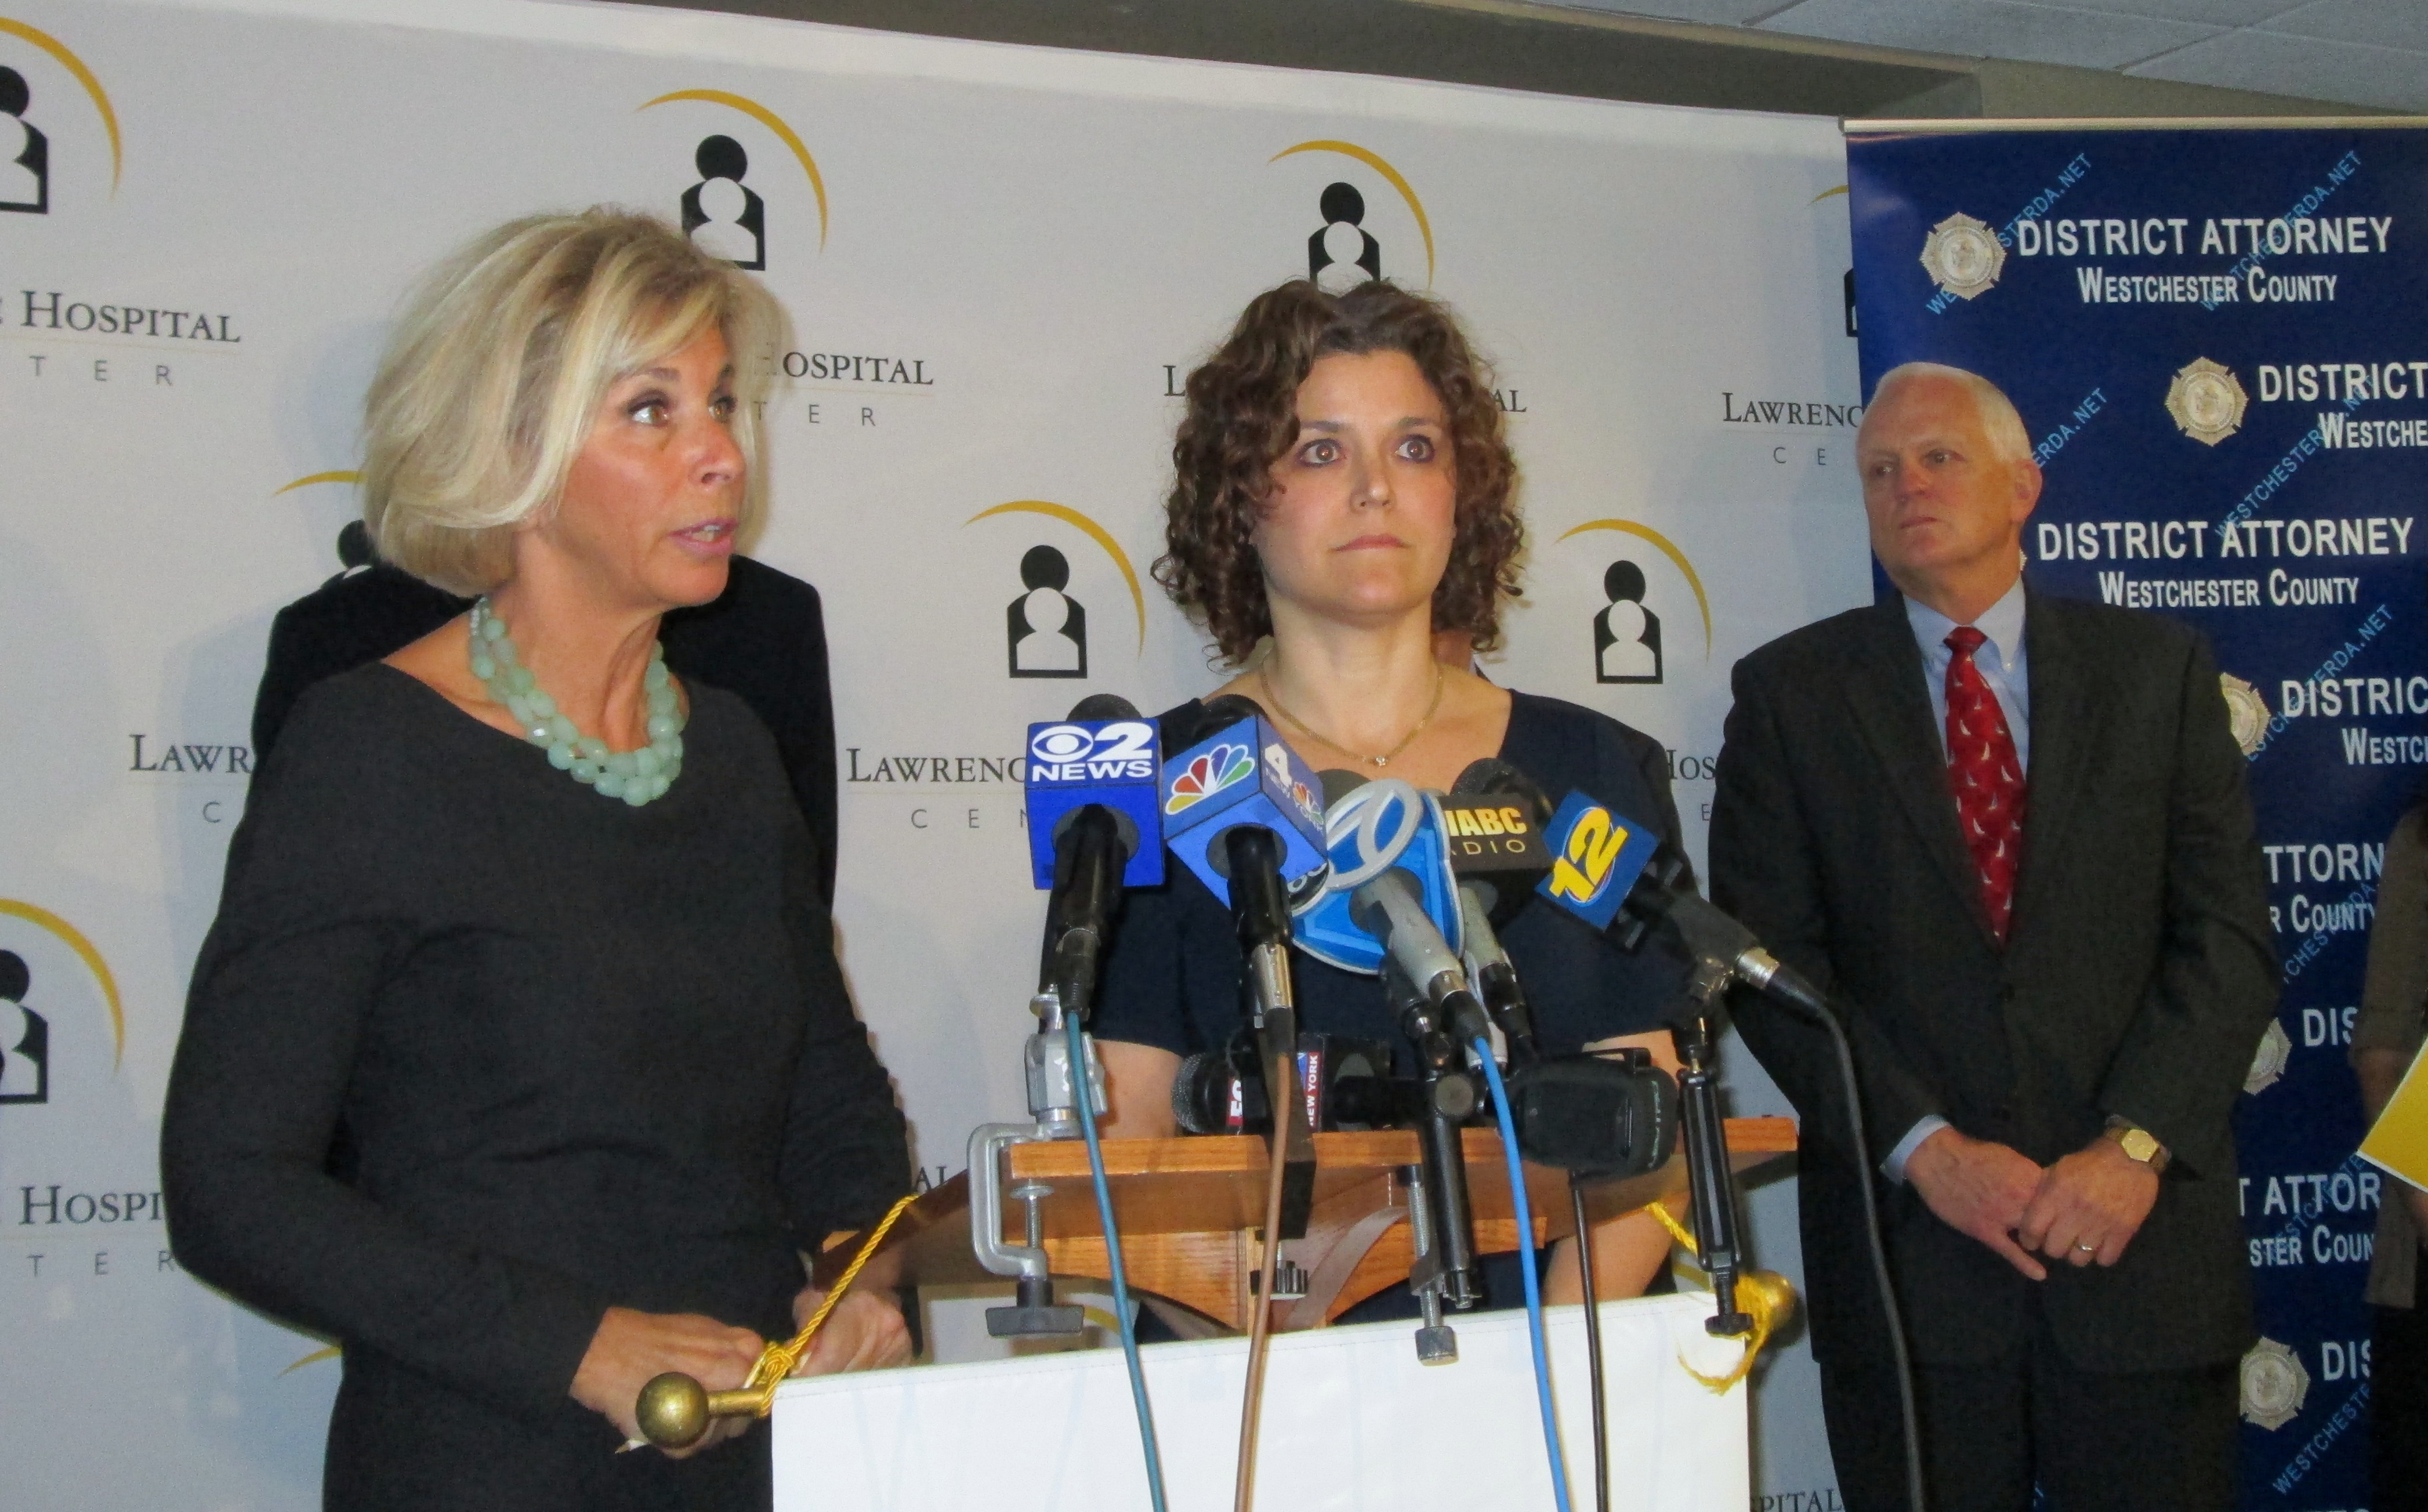 Janet DiFiore (left), Jennifer Canter (middle) and President of Lawrence Hospital Center Edward Dinan, worked together on a campaign to educate parents about safe sleeping habits for infants.